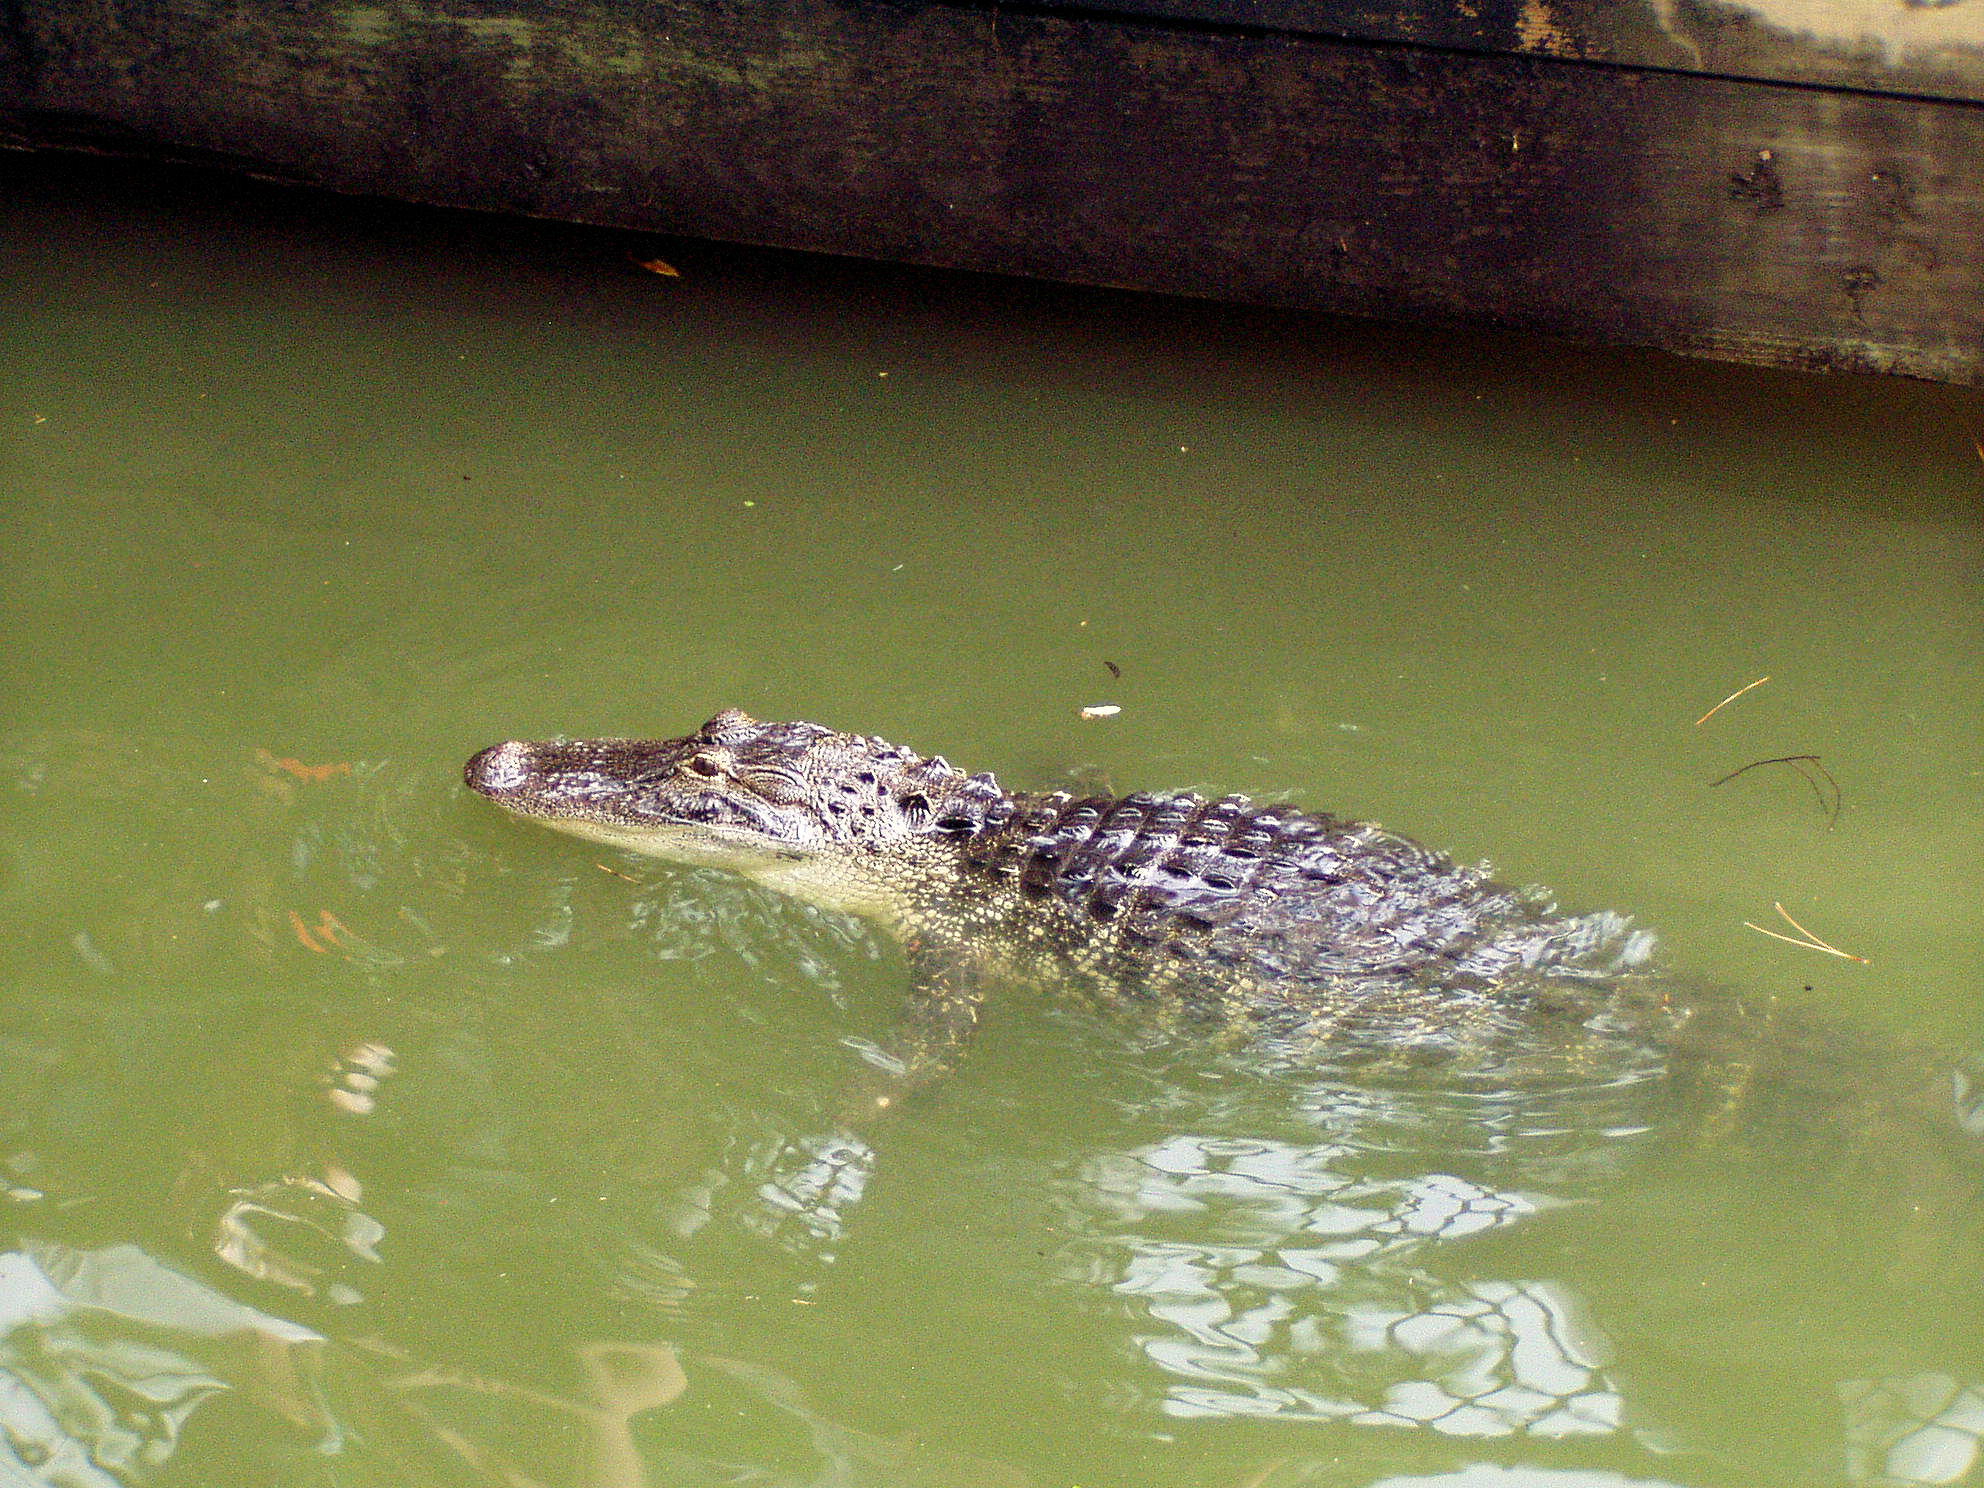 An alligator in the Rivers of America in The Magic Kingdom at Disney World.